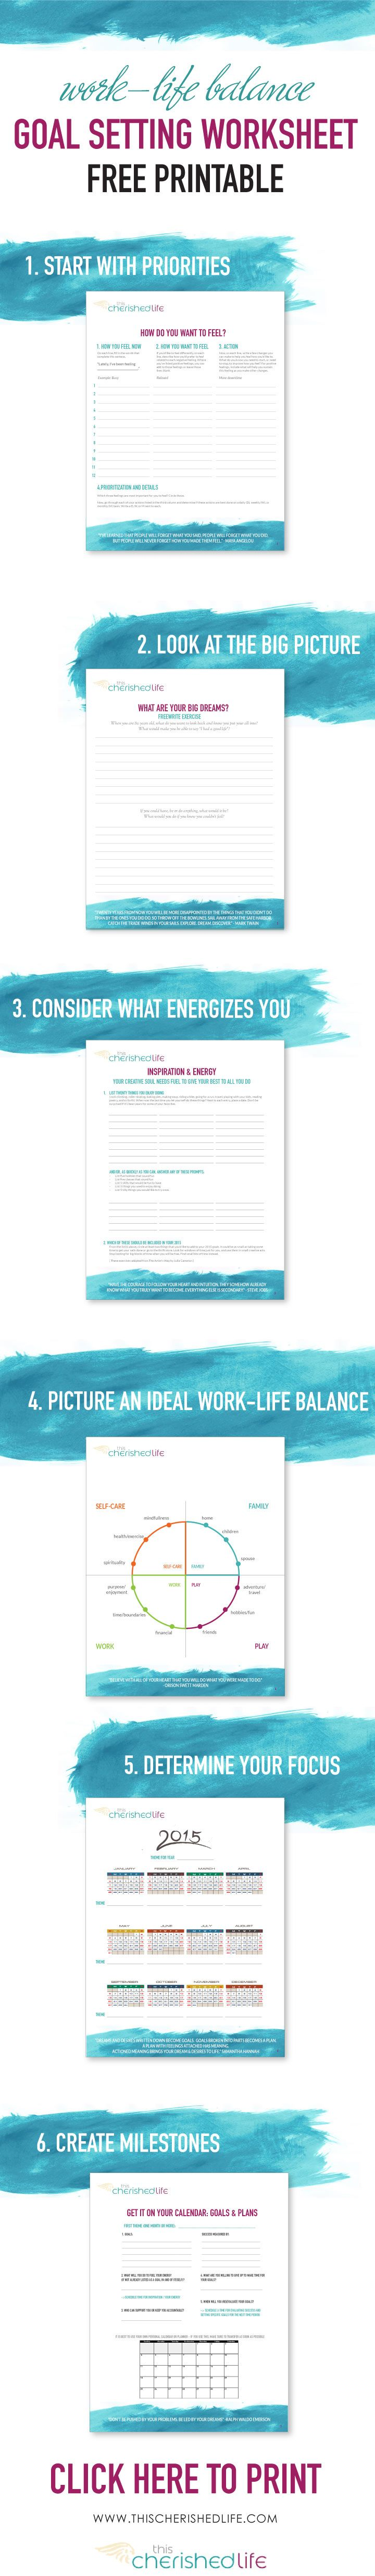 Free Worksheet Goal Worksheets For Adults 17 best ideas about goal setting worksheet on pinterest goals heart centered worksheets for creating a life you love finding your sweet spot